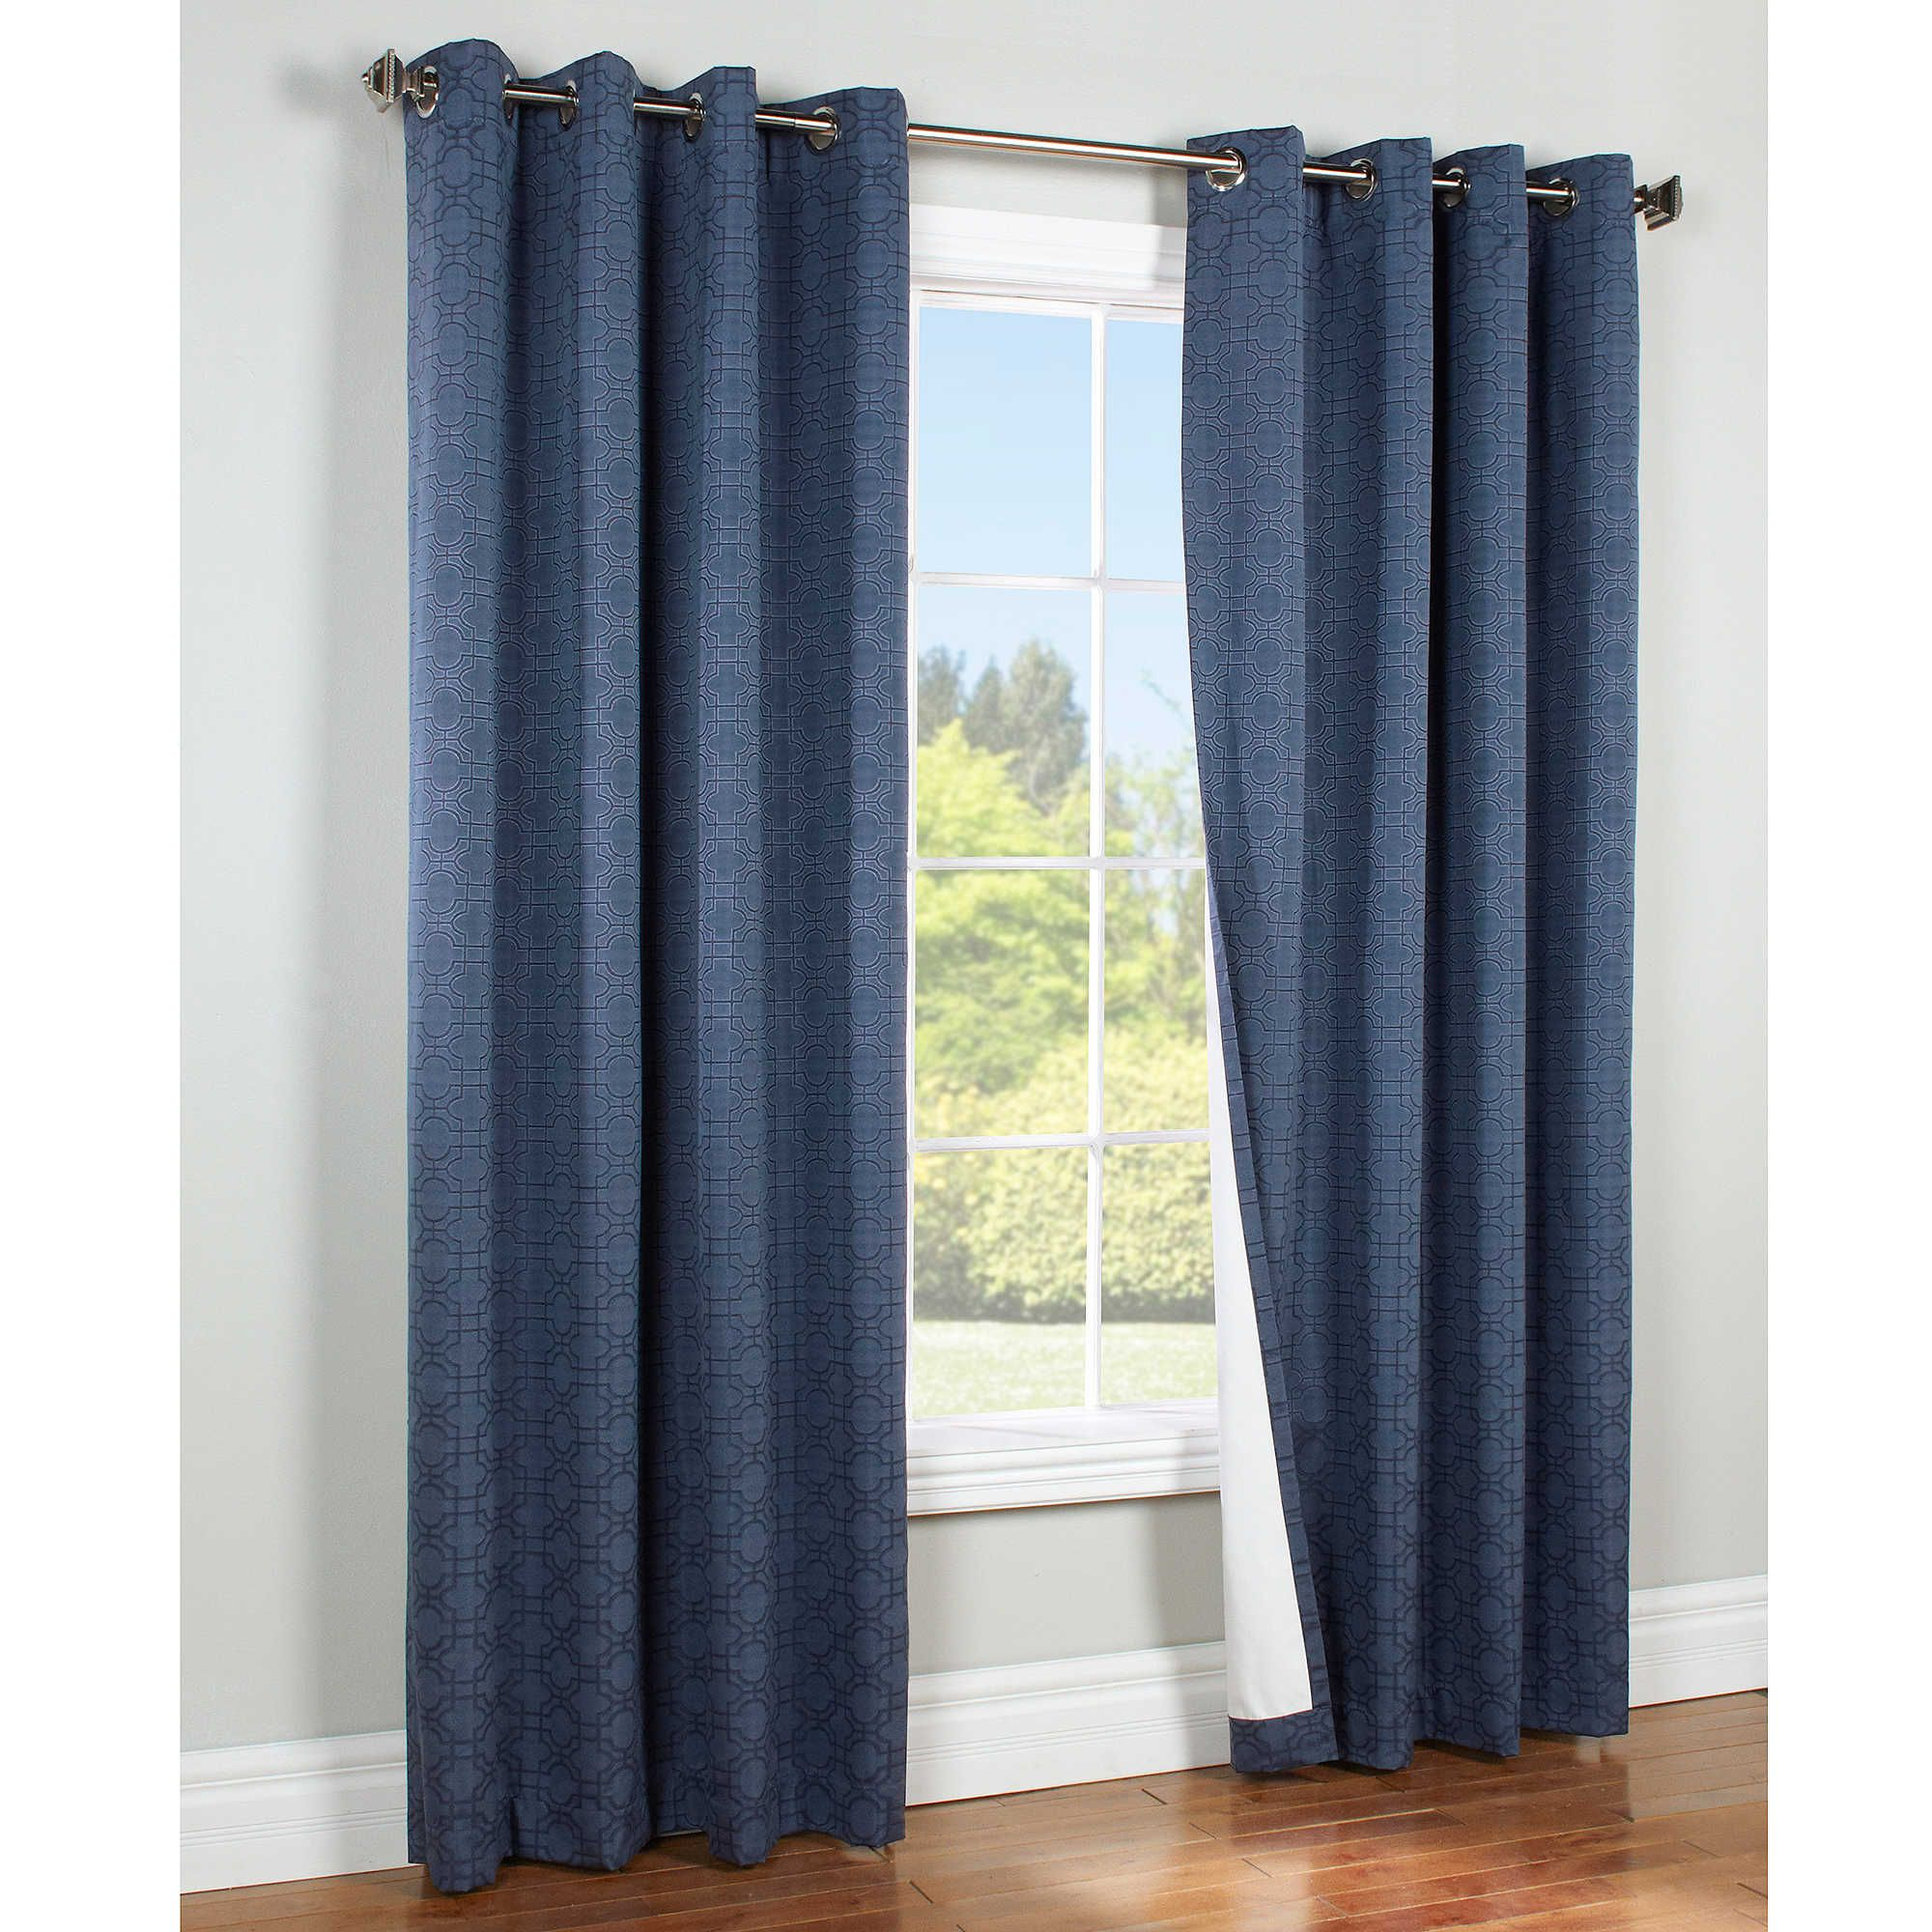 Bed bath and beyond window curtains  commonwealth home fashions irongate insulated blackout grommet top